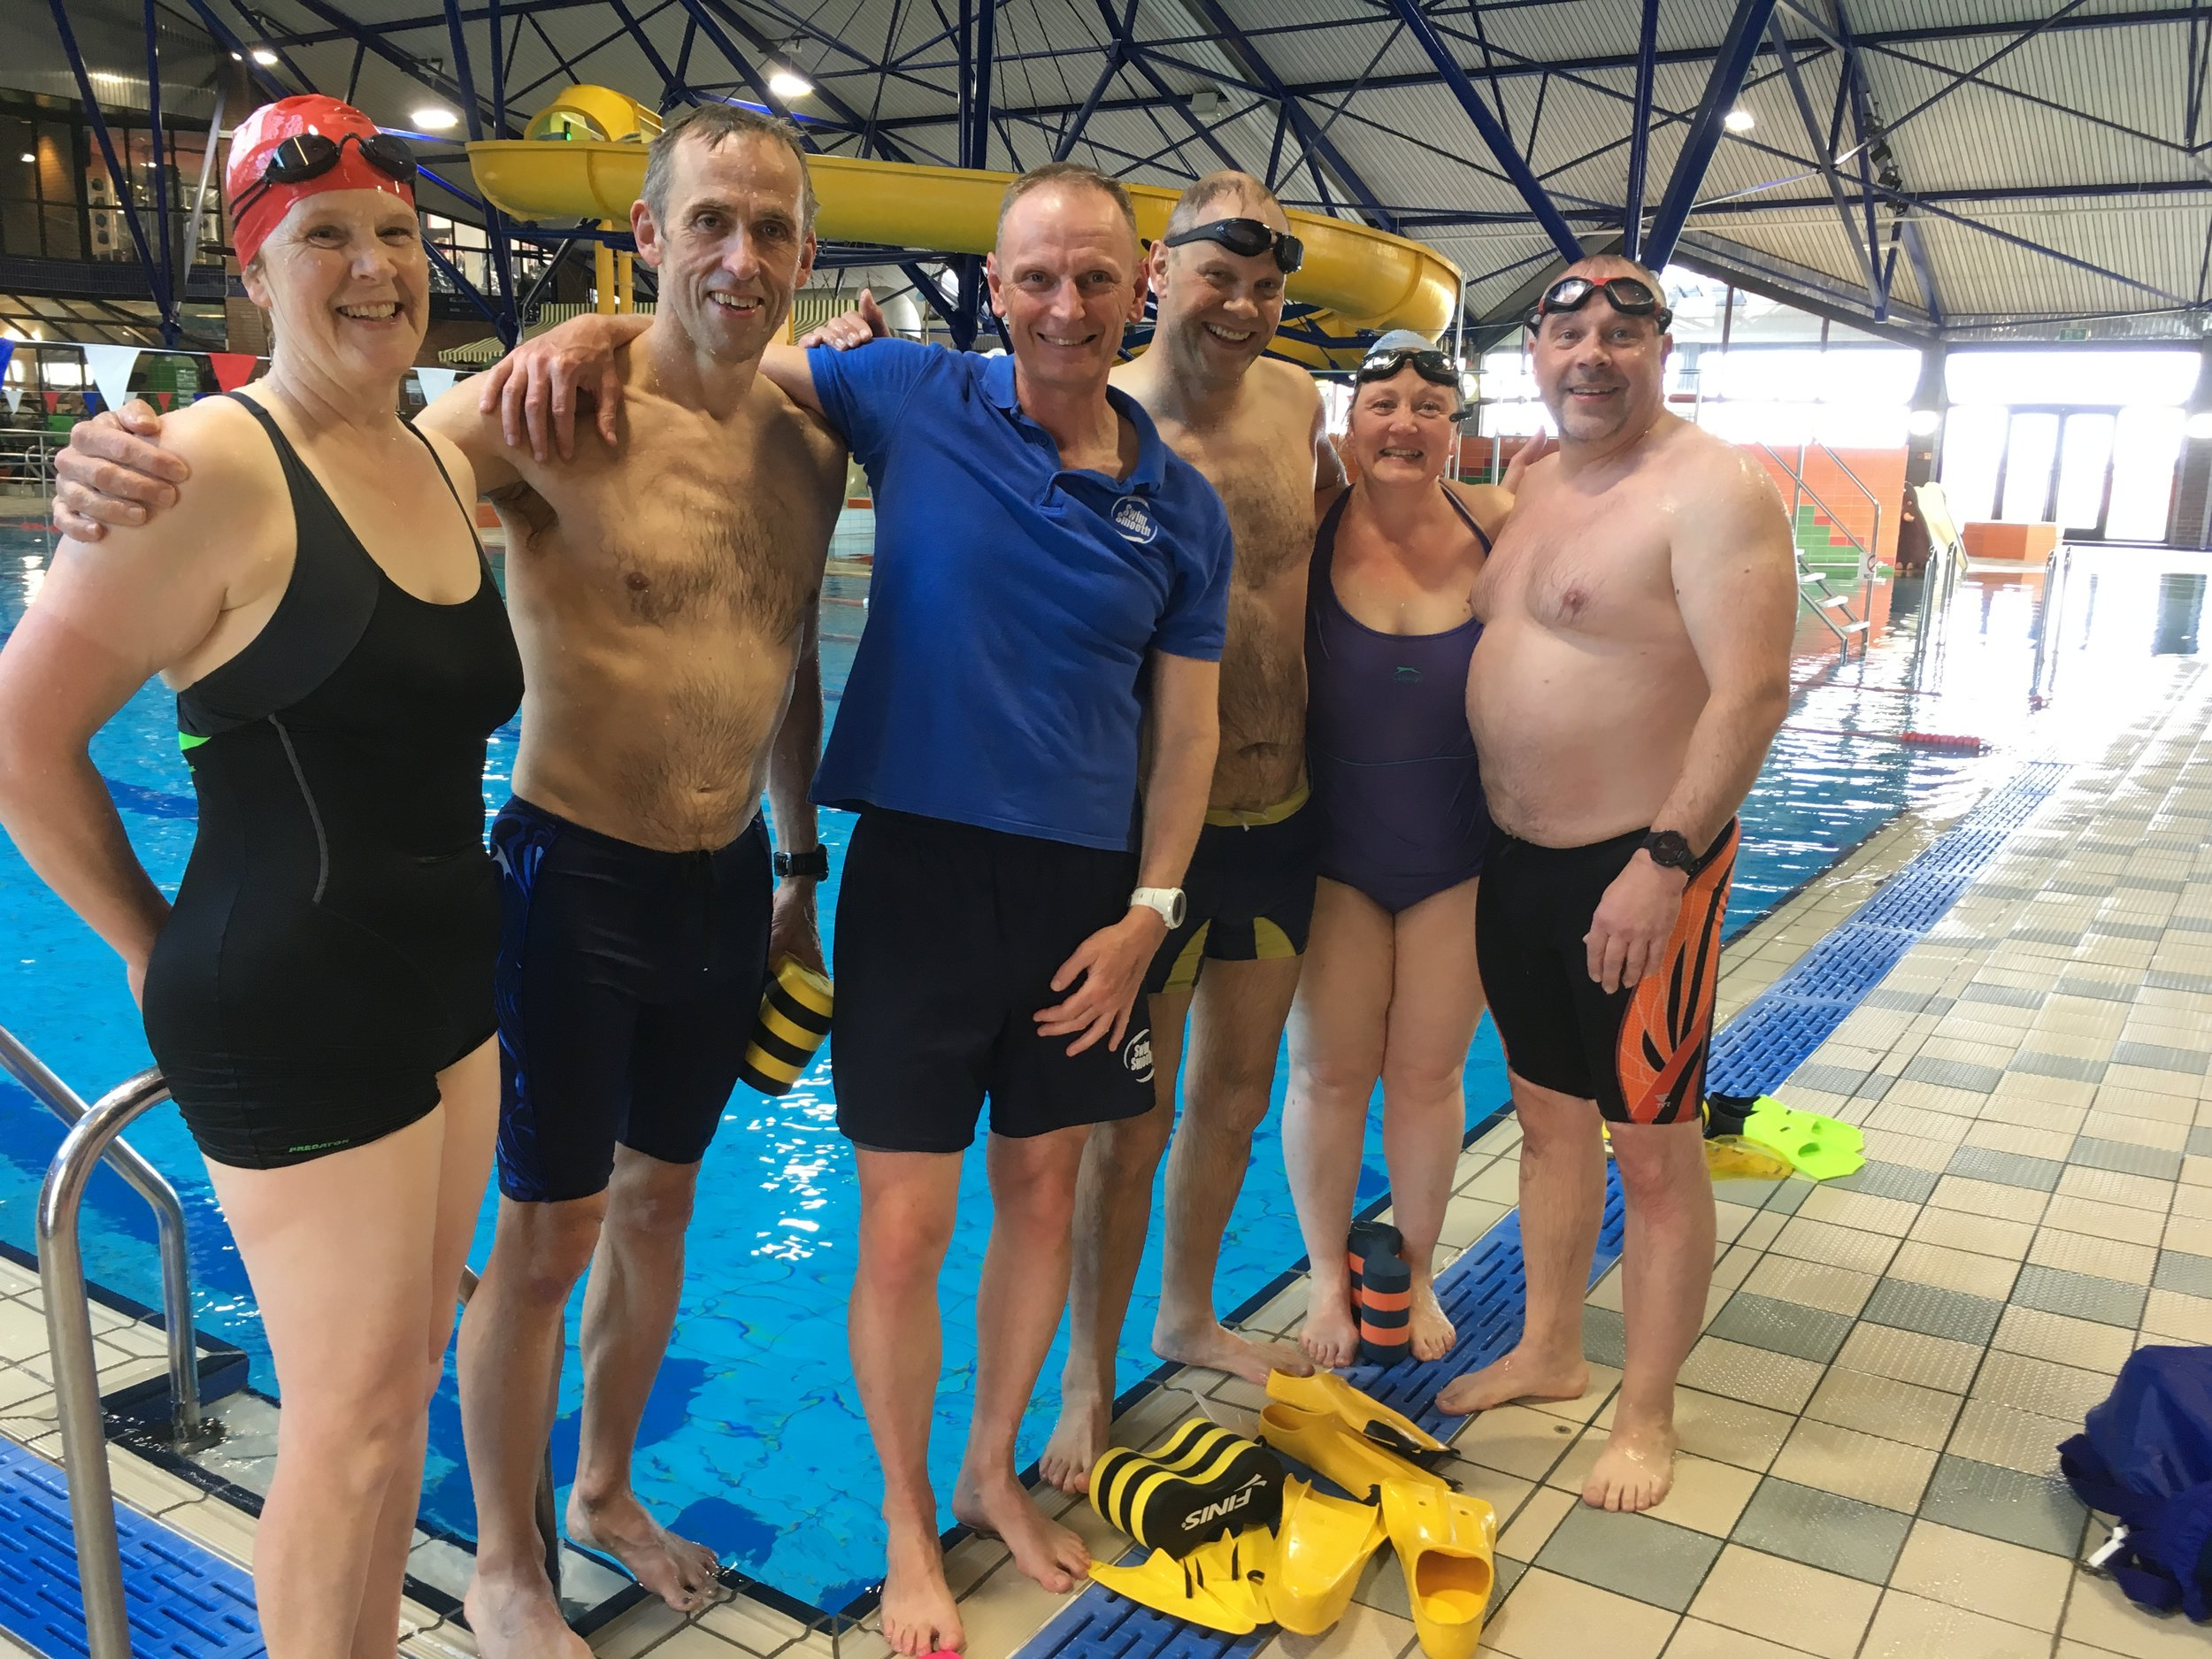 Tessa, John, Conrad, Amanda and Clive with one happy coach.